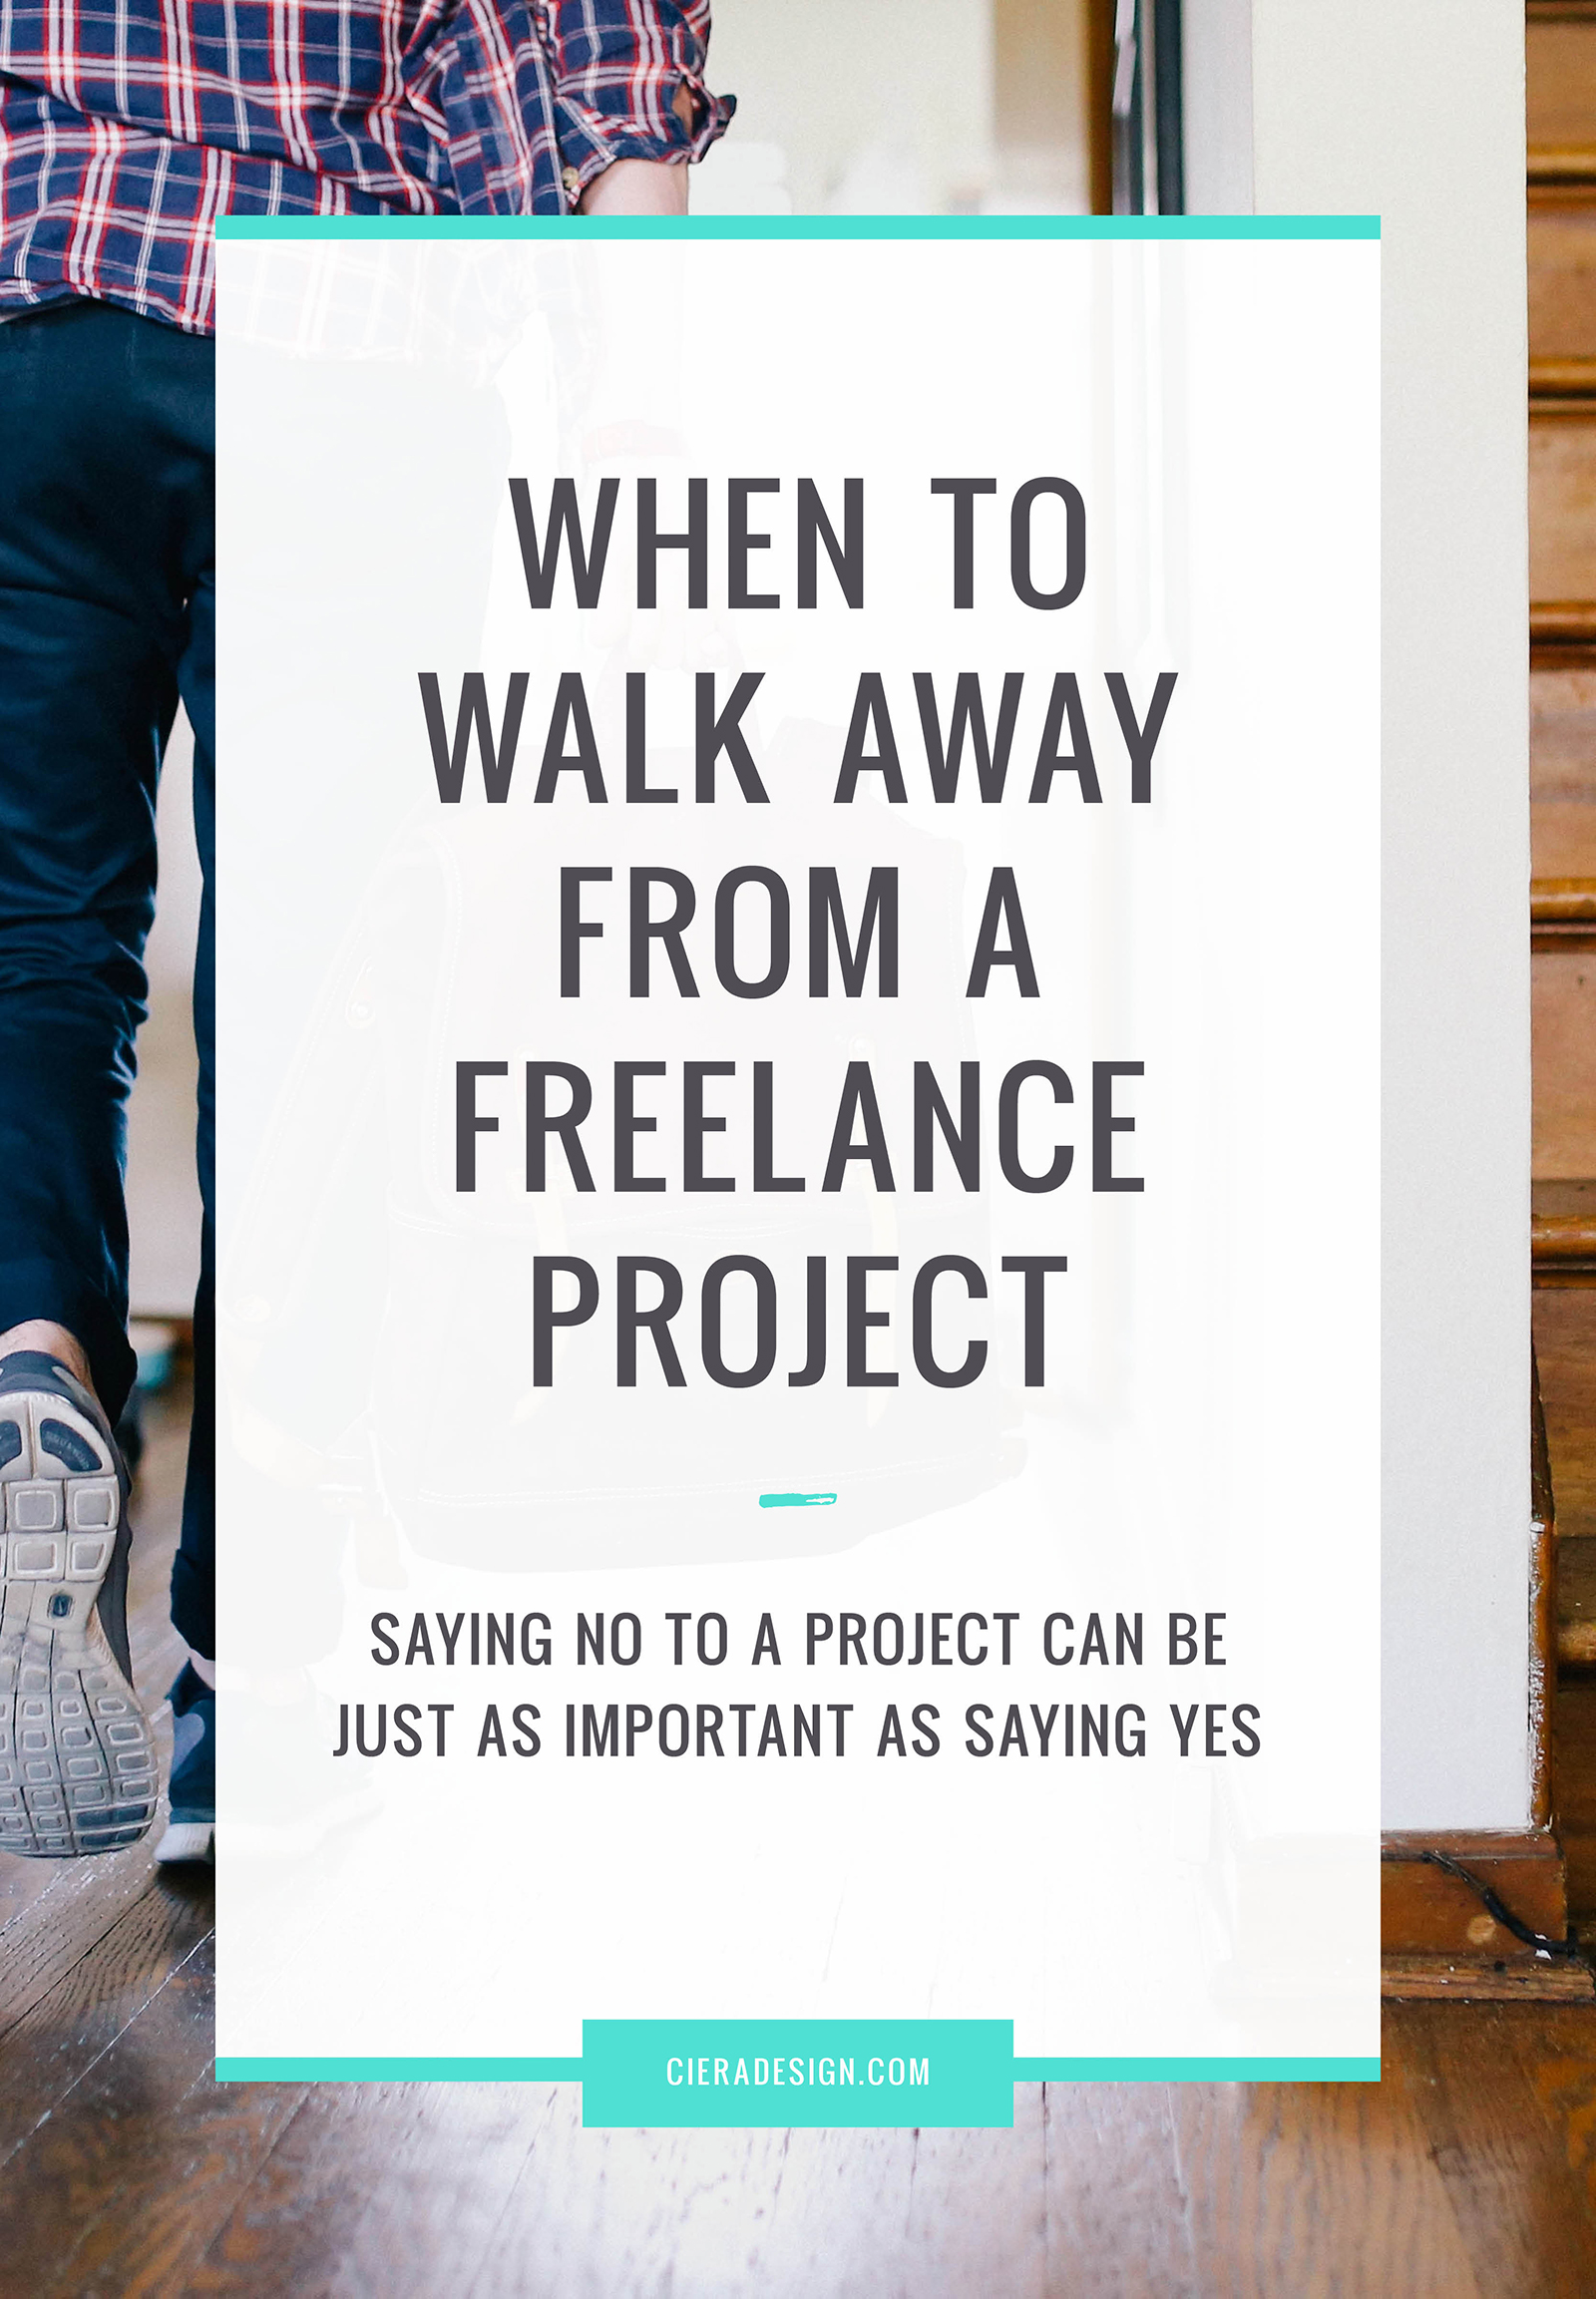 When To Walk Away From A Freelance Project - saying no to a project can be just as important as saying yes.